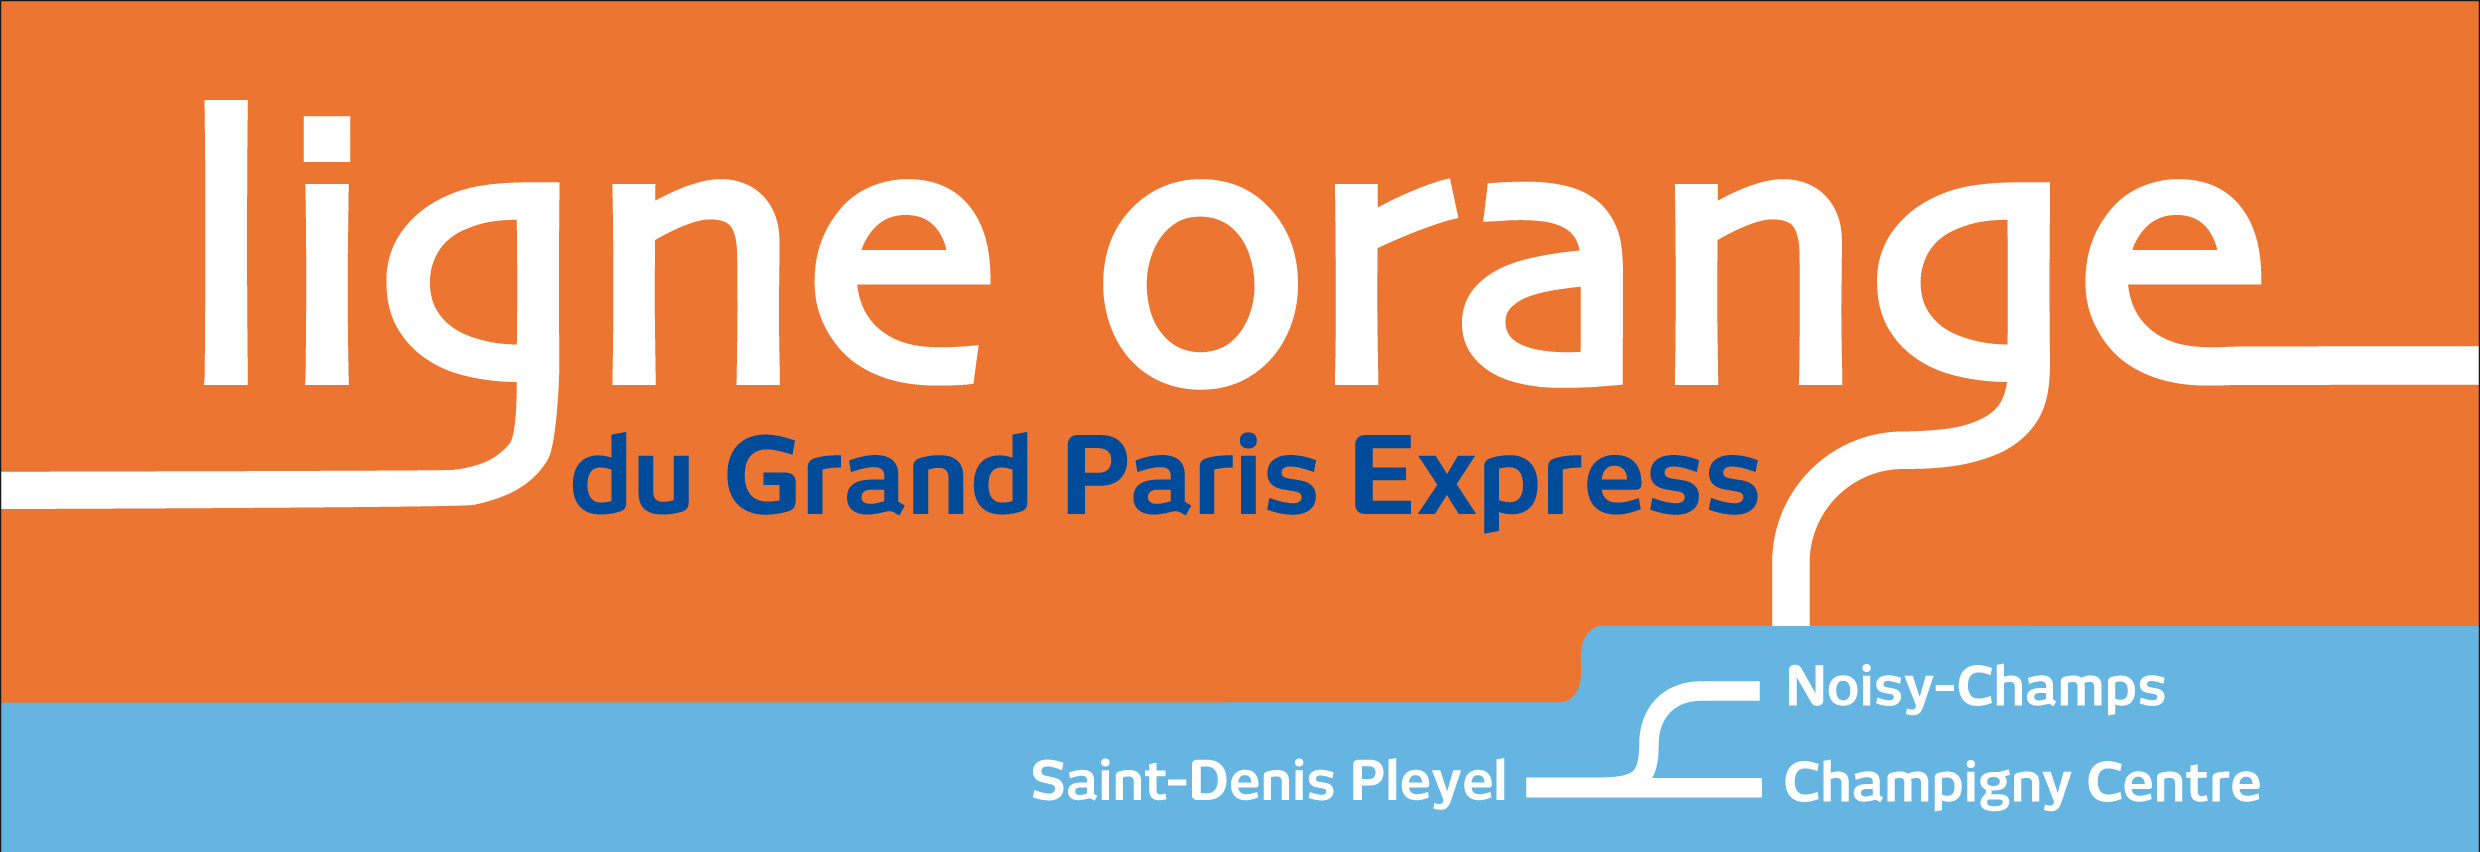 Totem-chantier-ligne-orange-grand-paris